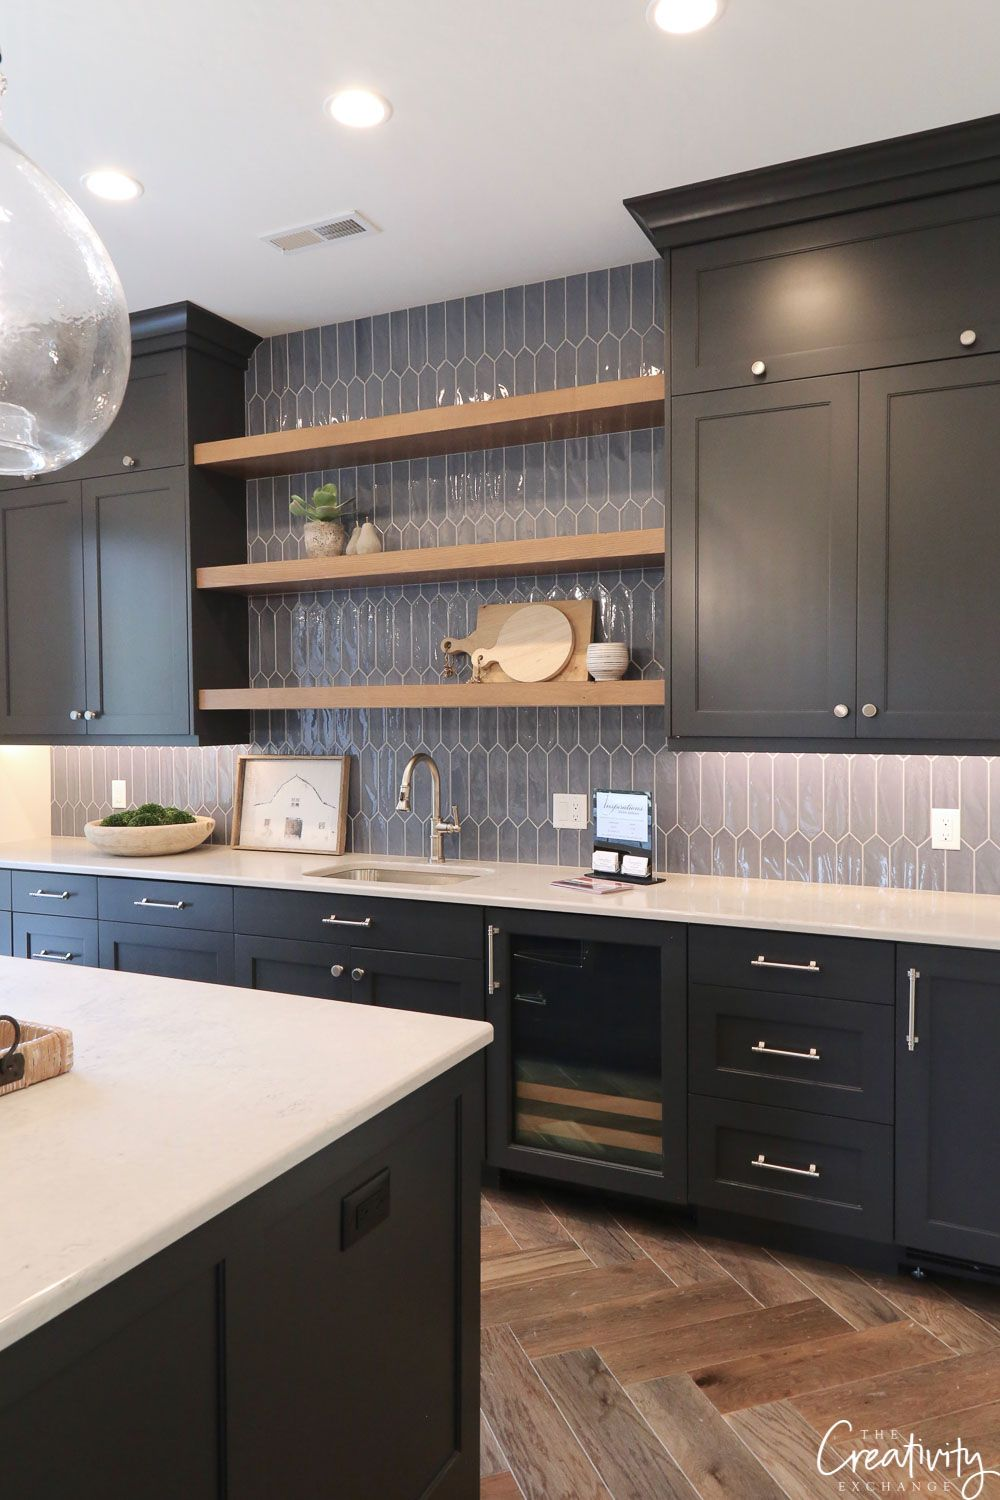 Benjamin Moore Hale Navy Cabinets And Open Shelves Combo Love The Tile